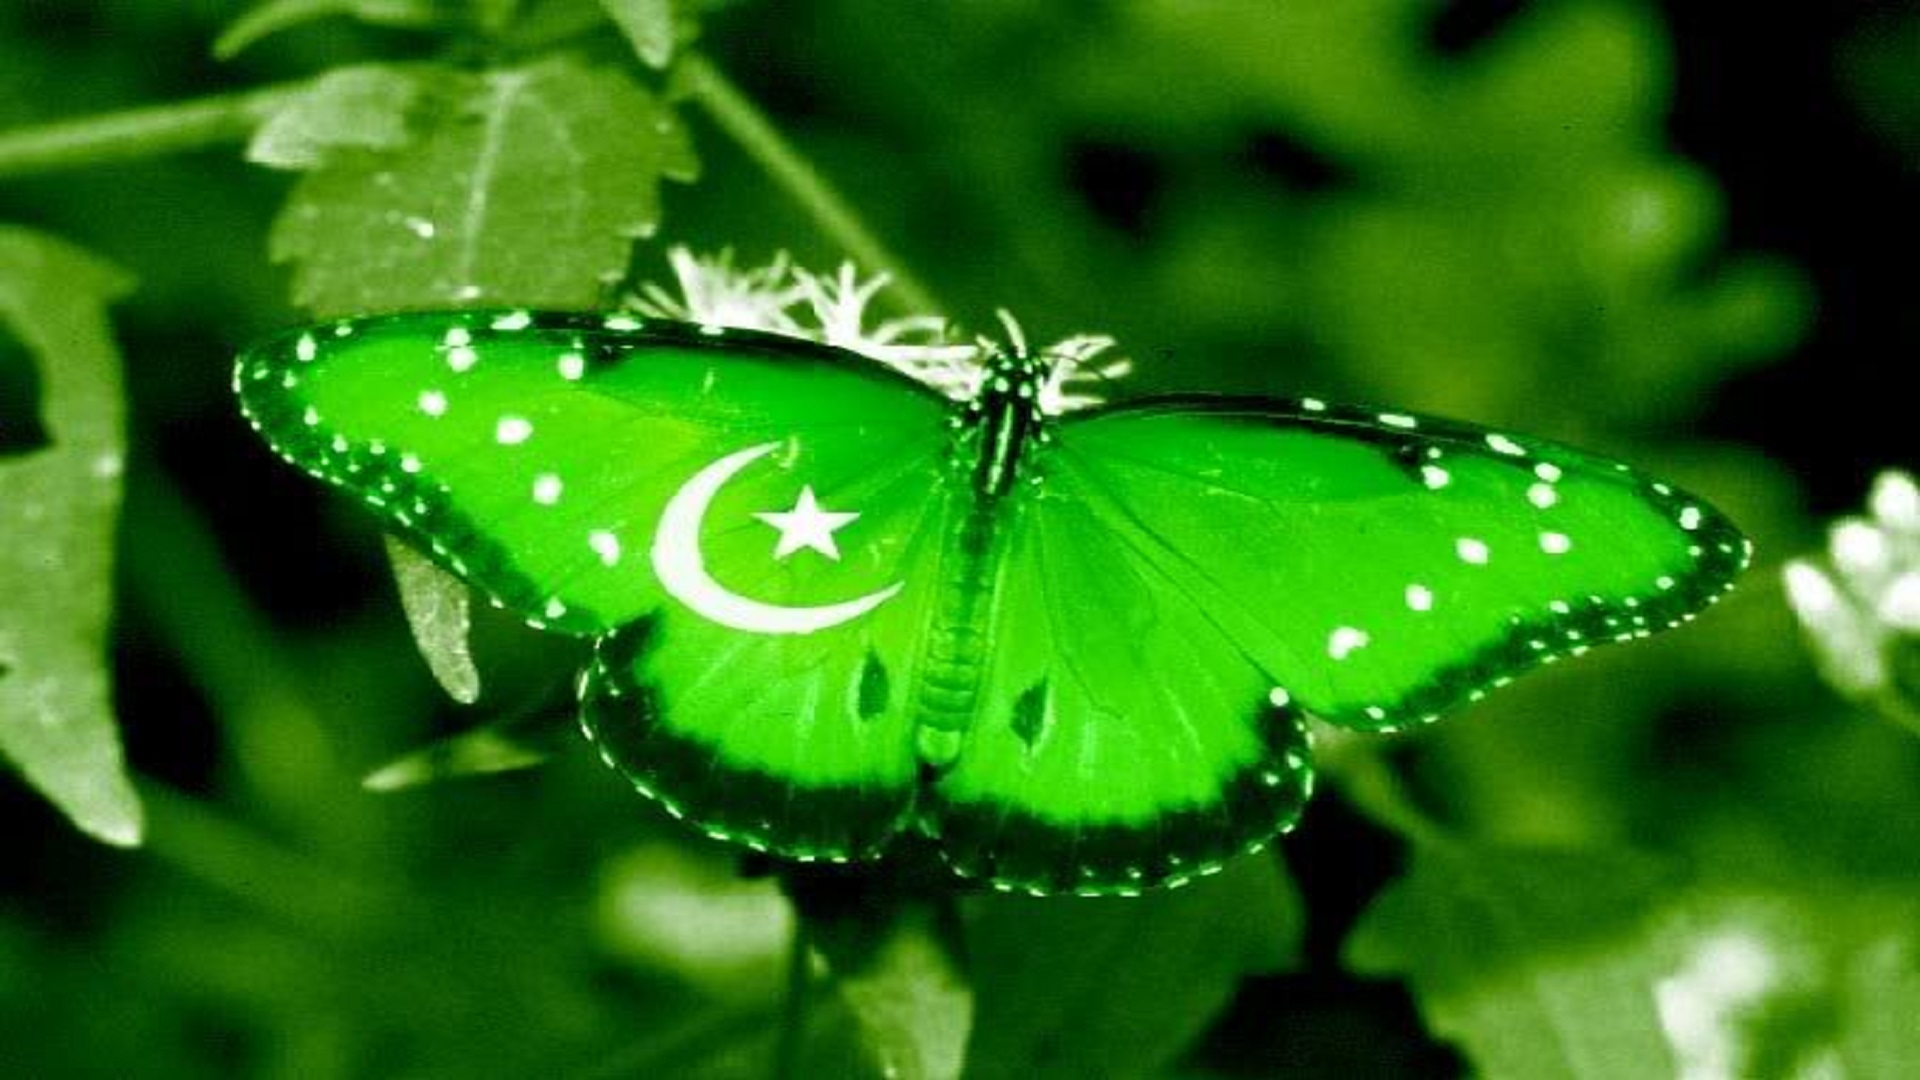 Hd wallpaper green - Pakistan Best Wallpapers Hd Free For You